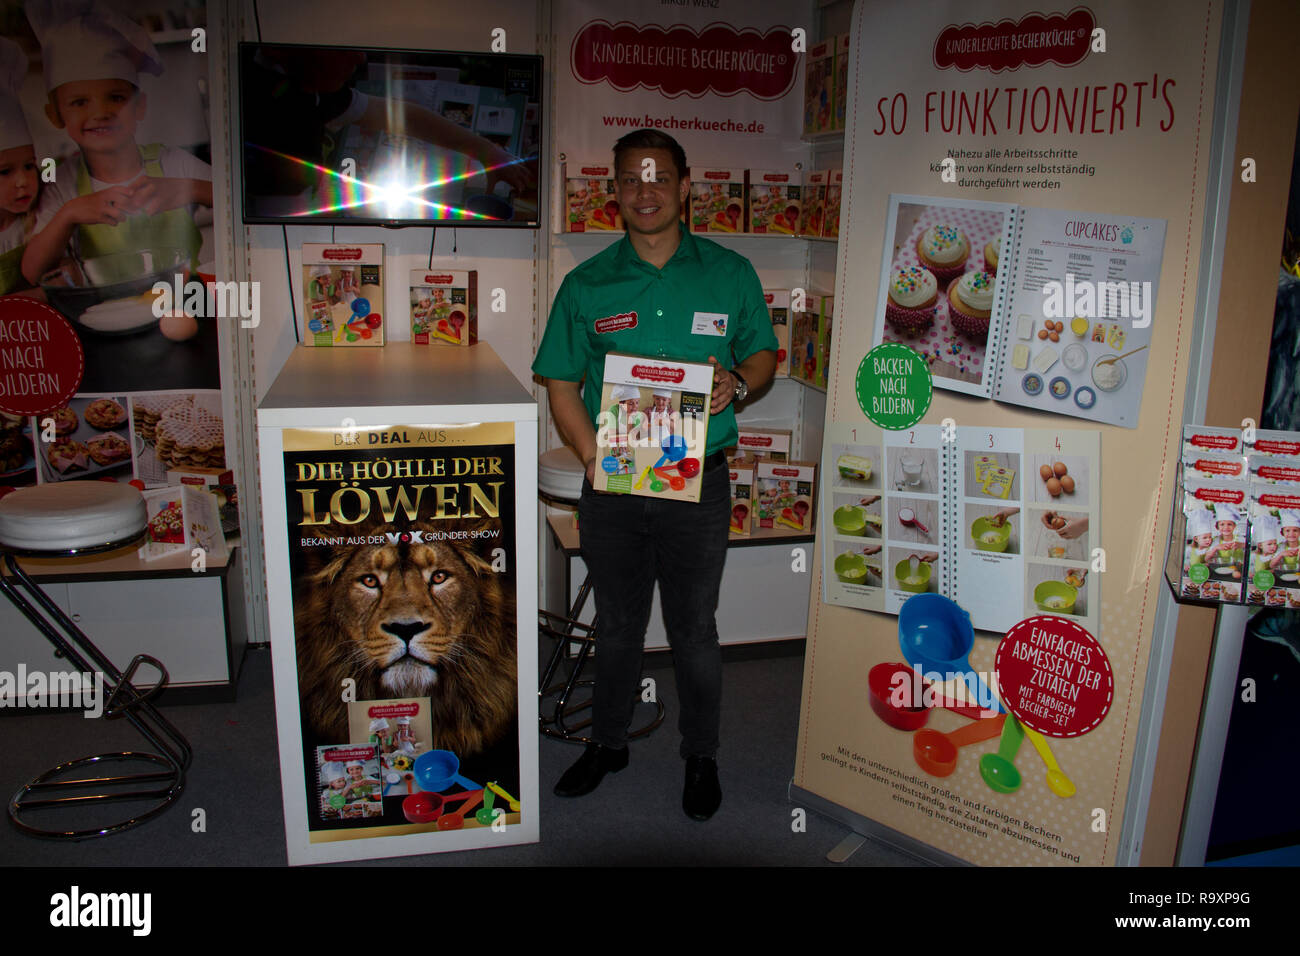 a kids backing book of 'die höhle der löwe' at the book fair 2016 in frankfurt am main germany - Stock Image